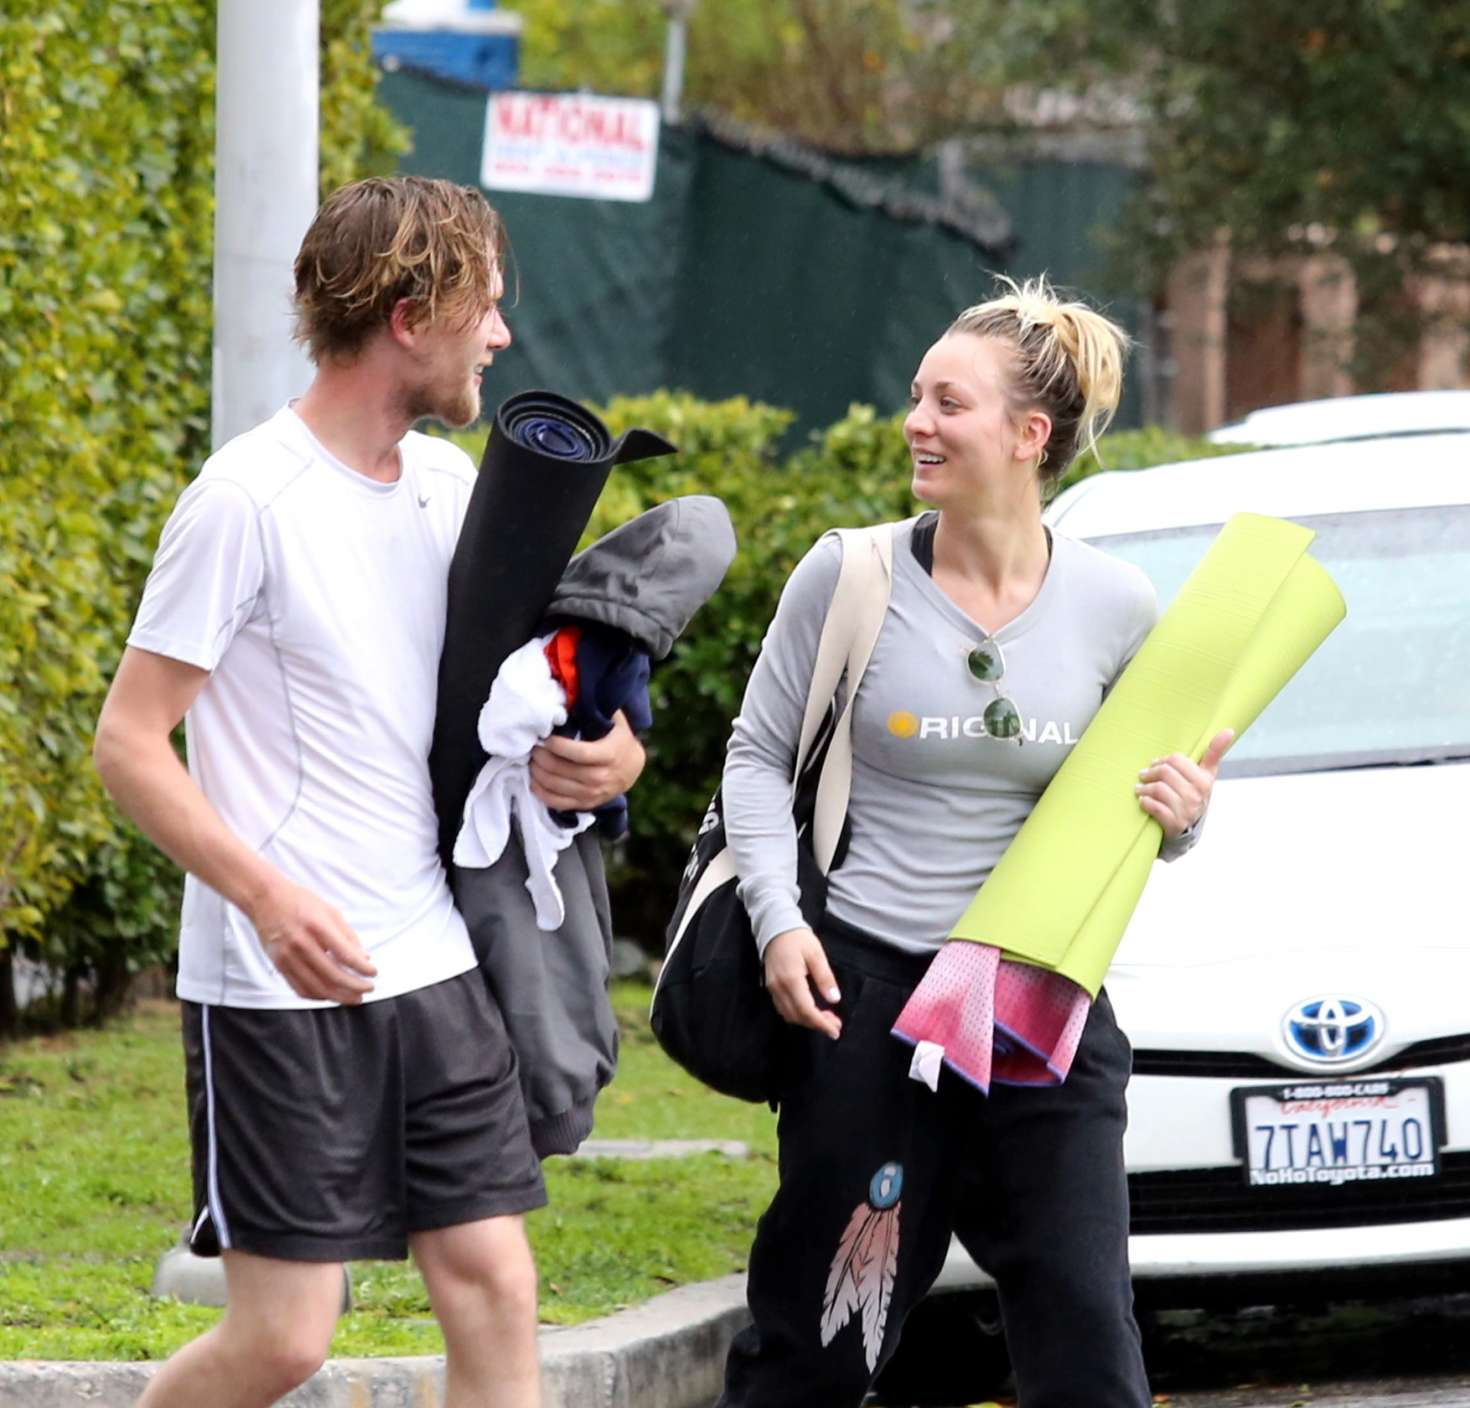 Kaley Cuoco 2017 : Kaley Cuoco and boyfriend Karl Cook Leaves yoga class -07